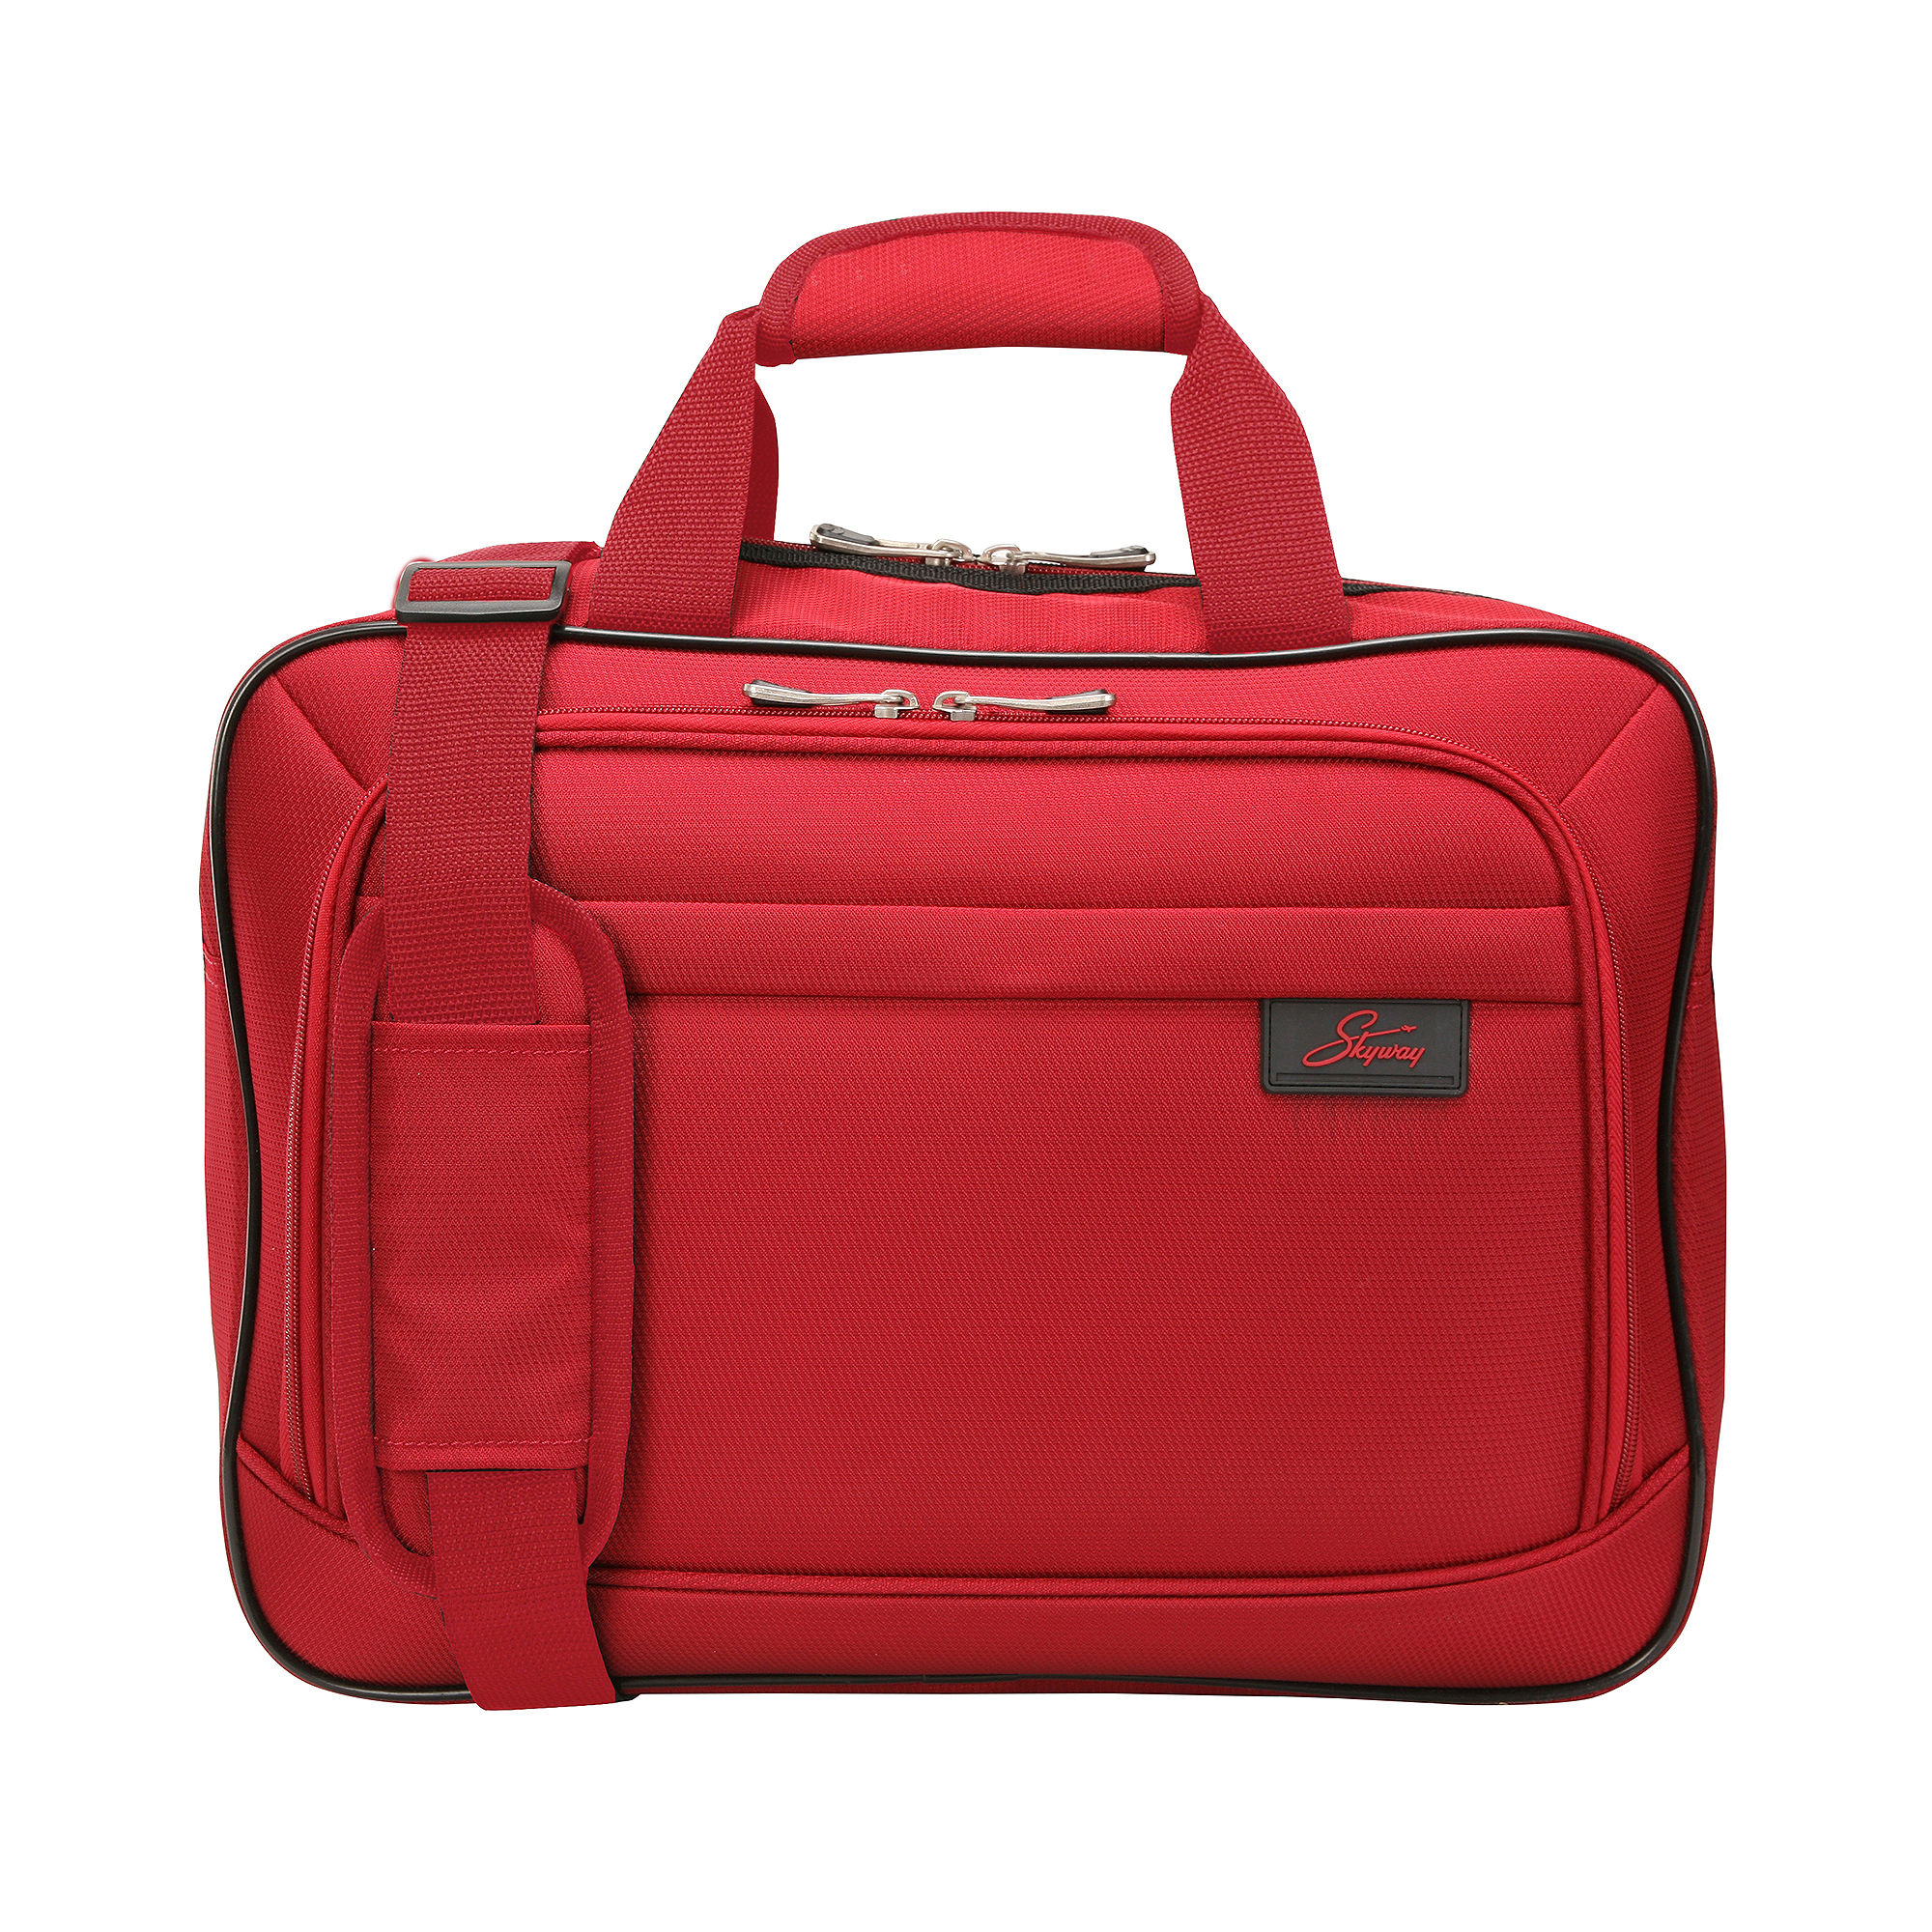 "Skyway Sigma 5.0 16"" Carry-On Shoulder Tote"